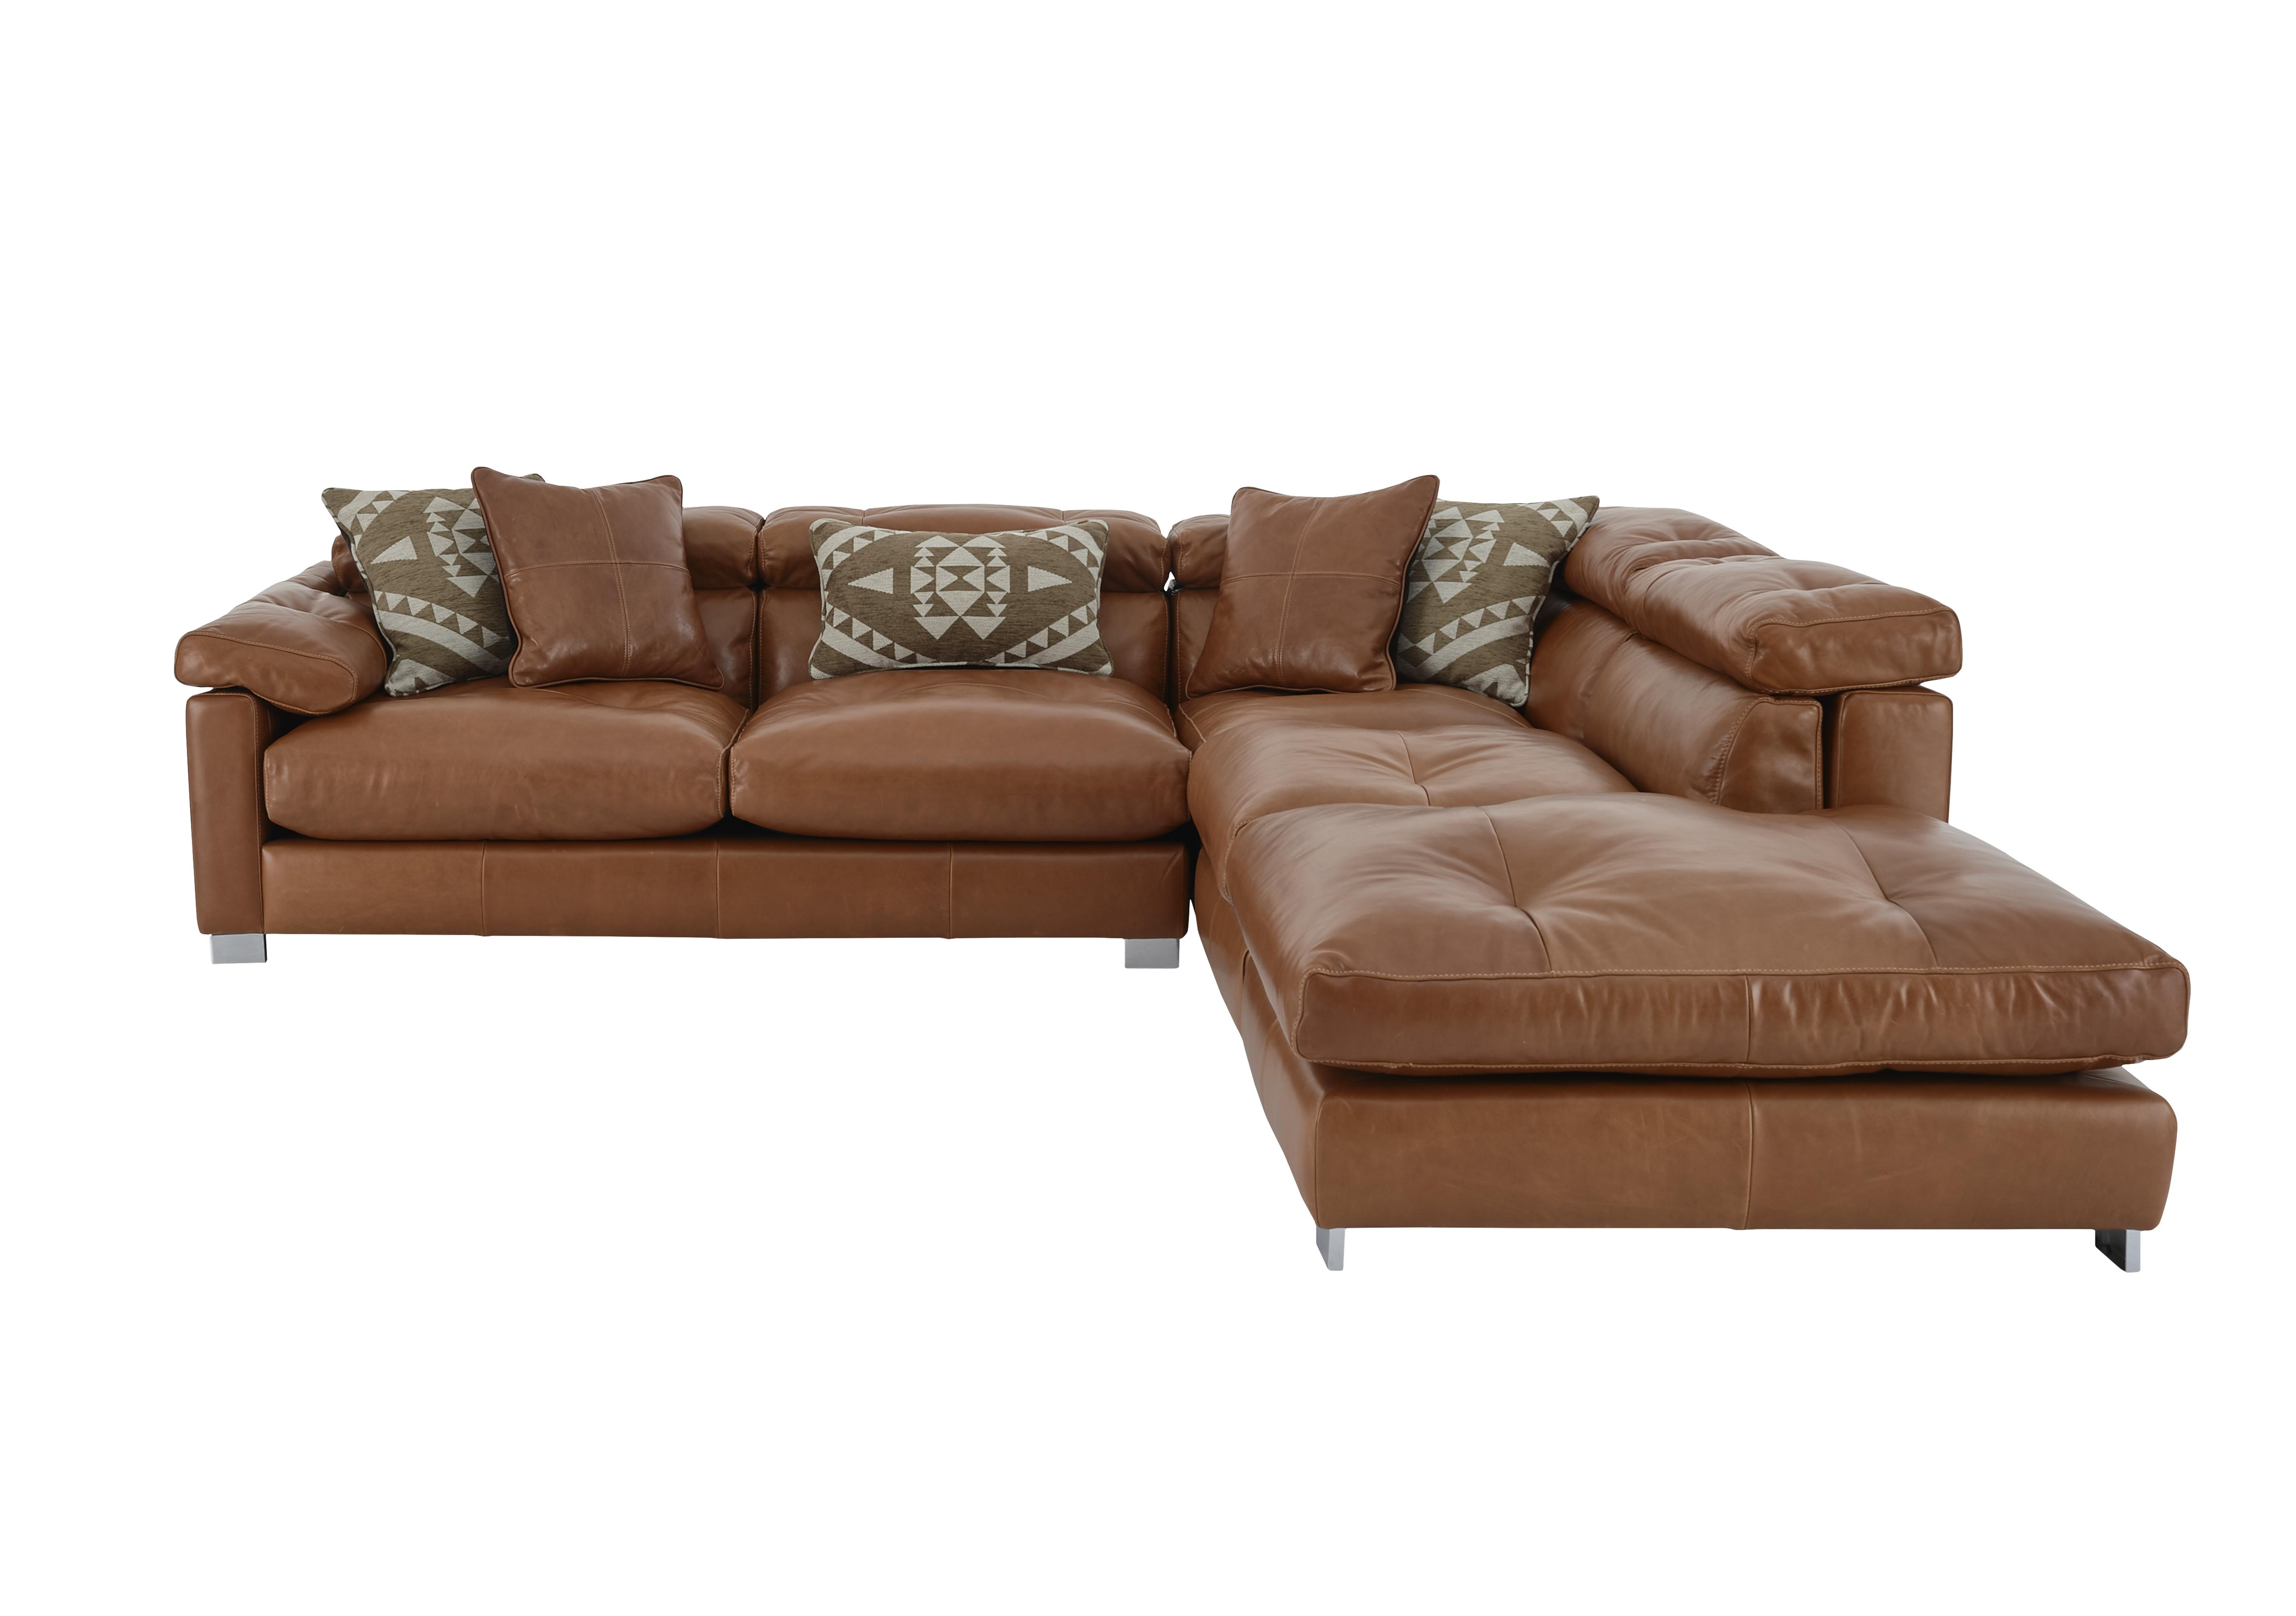 corner sofa couches aqua leather sectional extra large sofas uk brokeasshome